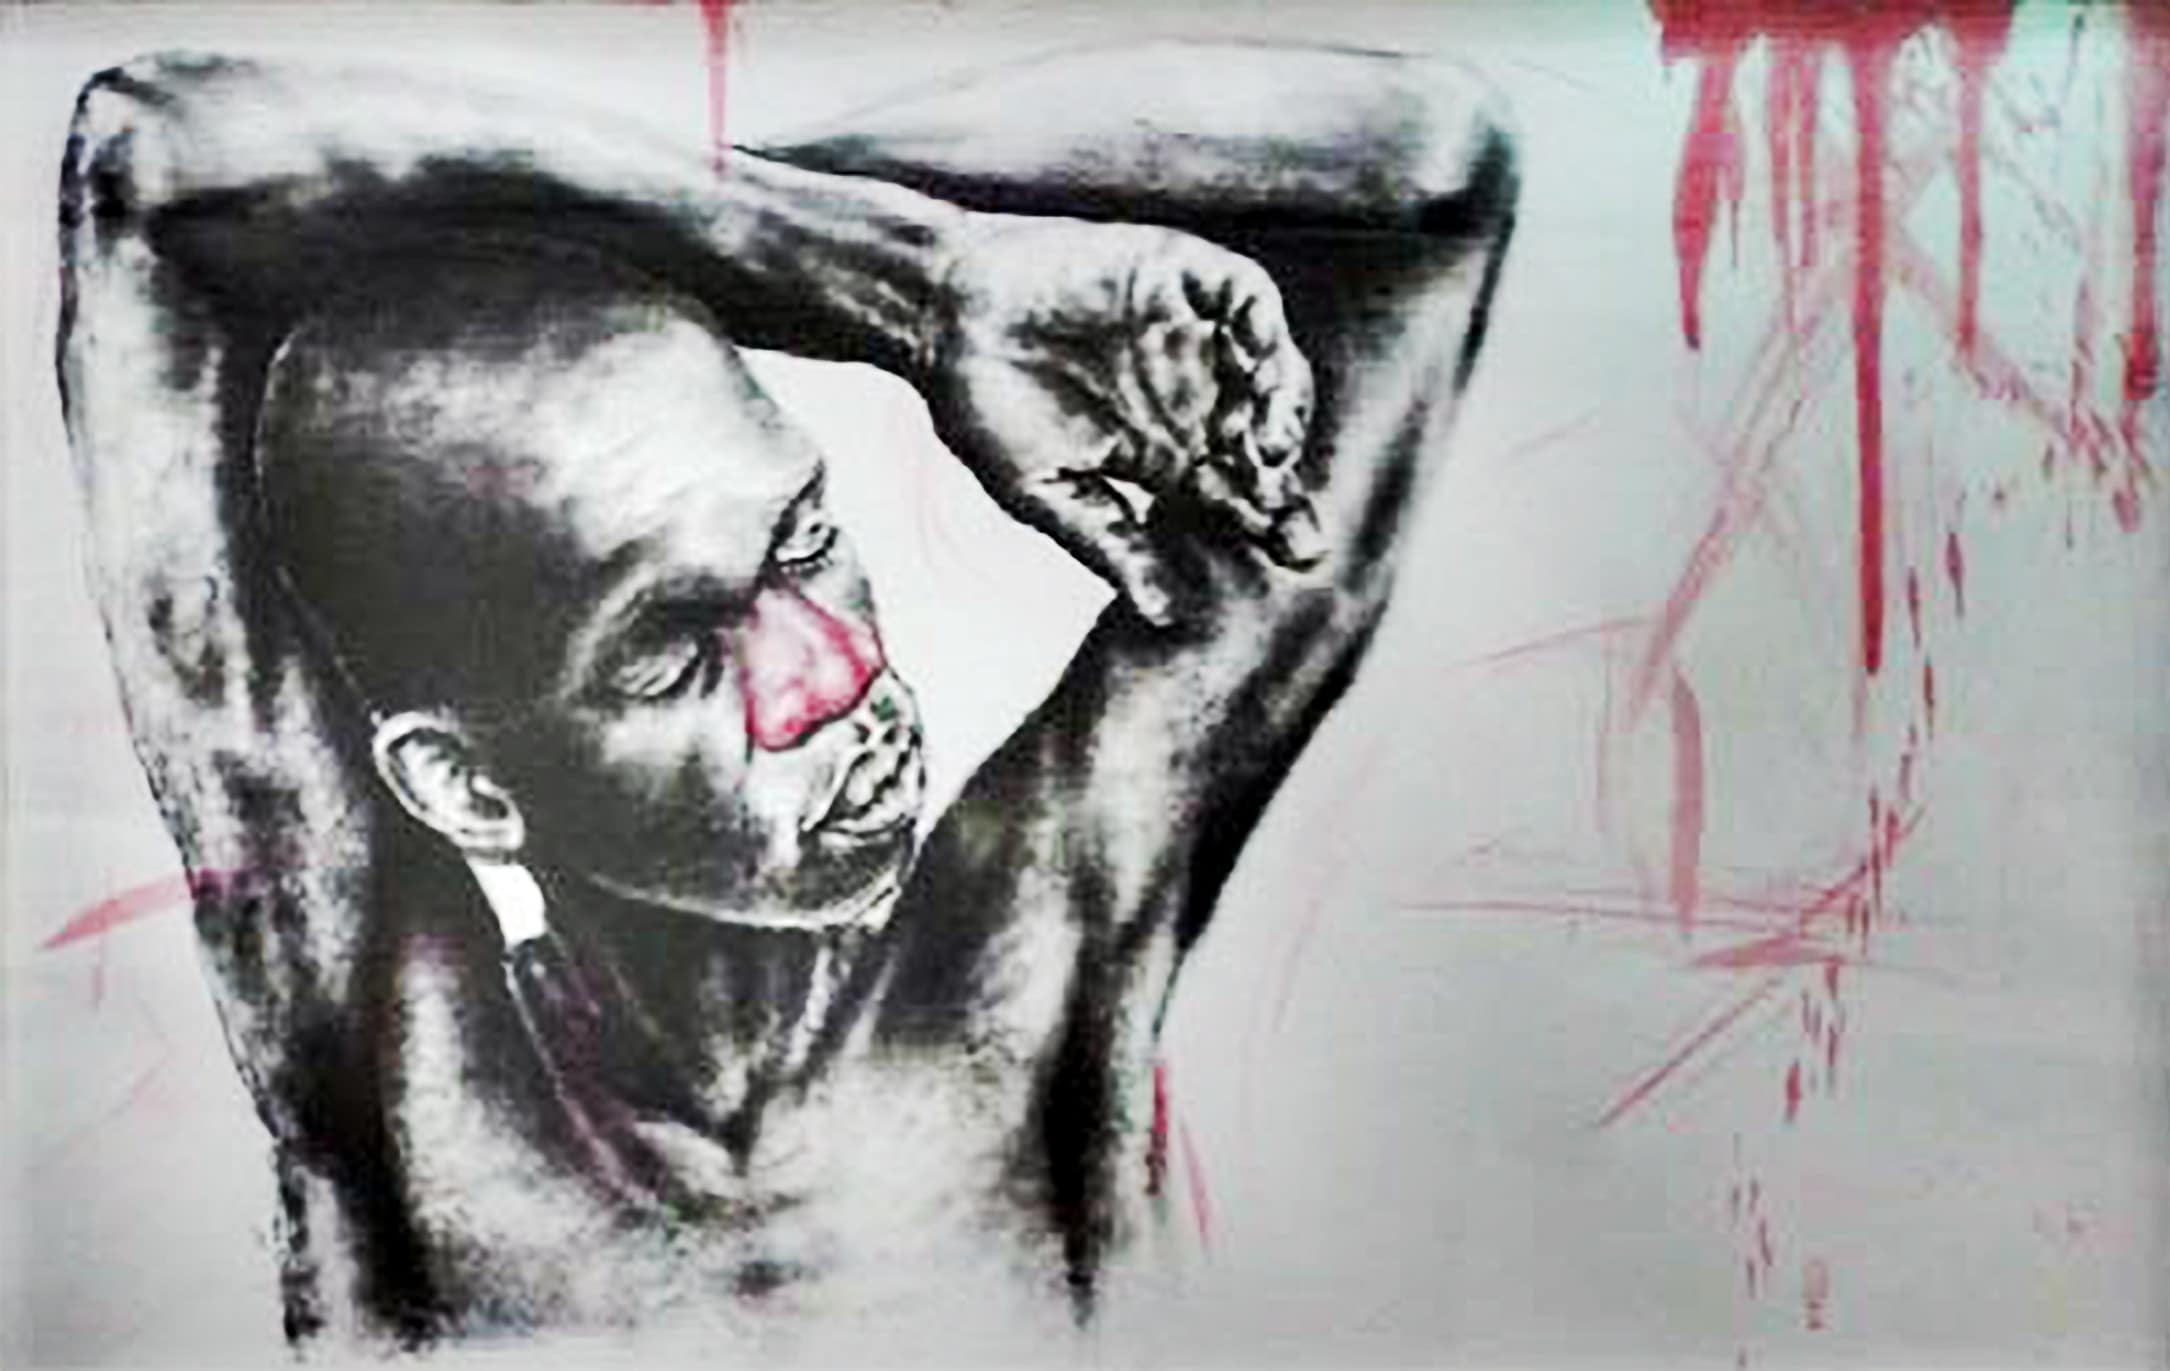 <span class=&#34;link fancybox-details-link&#34;><a href=&#34;/artworks/categories/121/3154-mlamuli-mkhwanazi-isithunywa-sendlozi-2015/&#34;>View Detail Page</a></span><div class=&#34;artist&#34;><strong>Mlamuli Mkhwanazi</strong></div> <div class=&#34;title&#34;><em>Isithunywa Sendlozi</em>, 2015</div> <div class=&#34;medium&#34;>Charcoal & Ink On Paper</div> <div class=&#34;dimensions&#34;>83cm x 121cm</div><div class=&#34;price&#34;>R11,800.00</div>